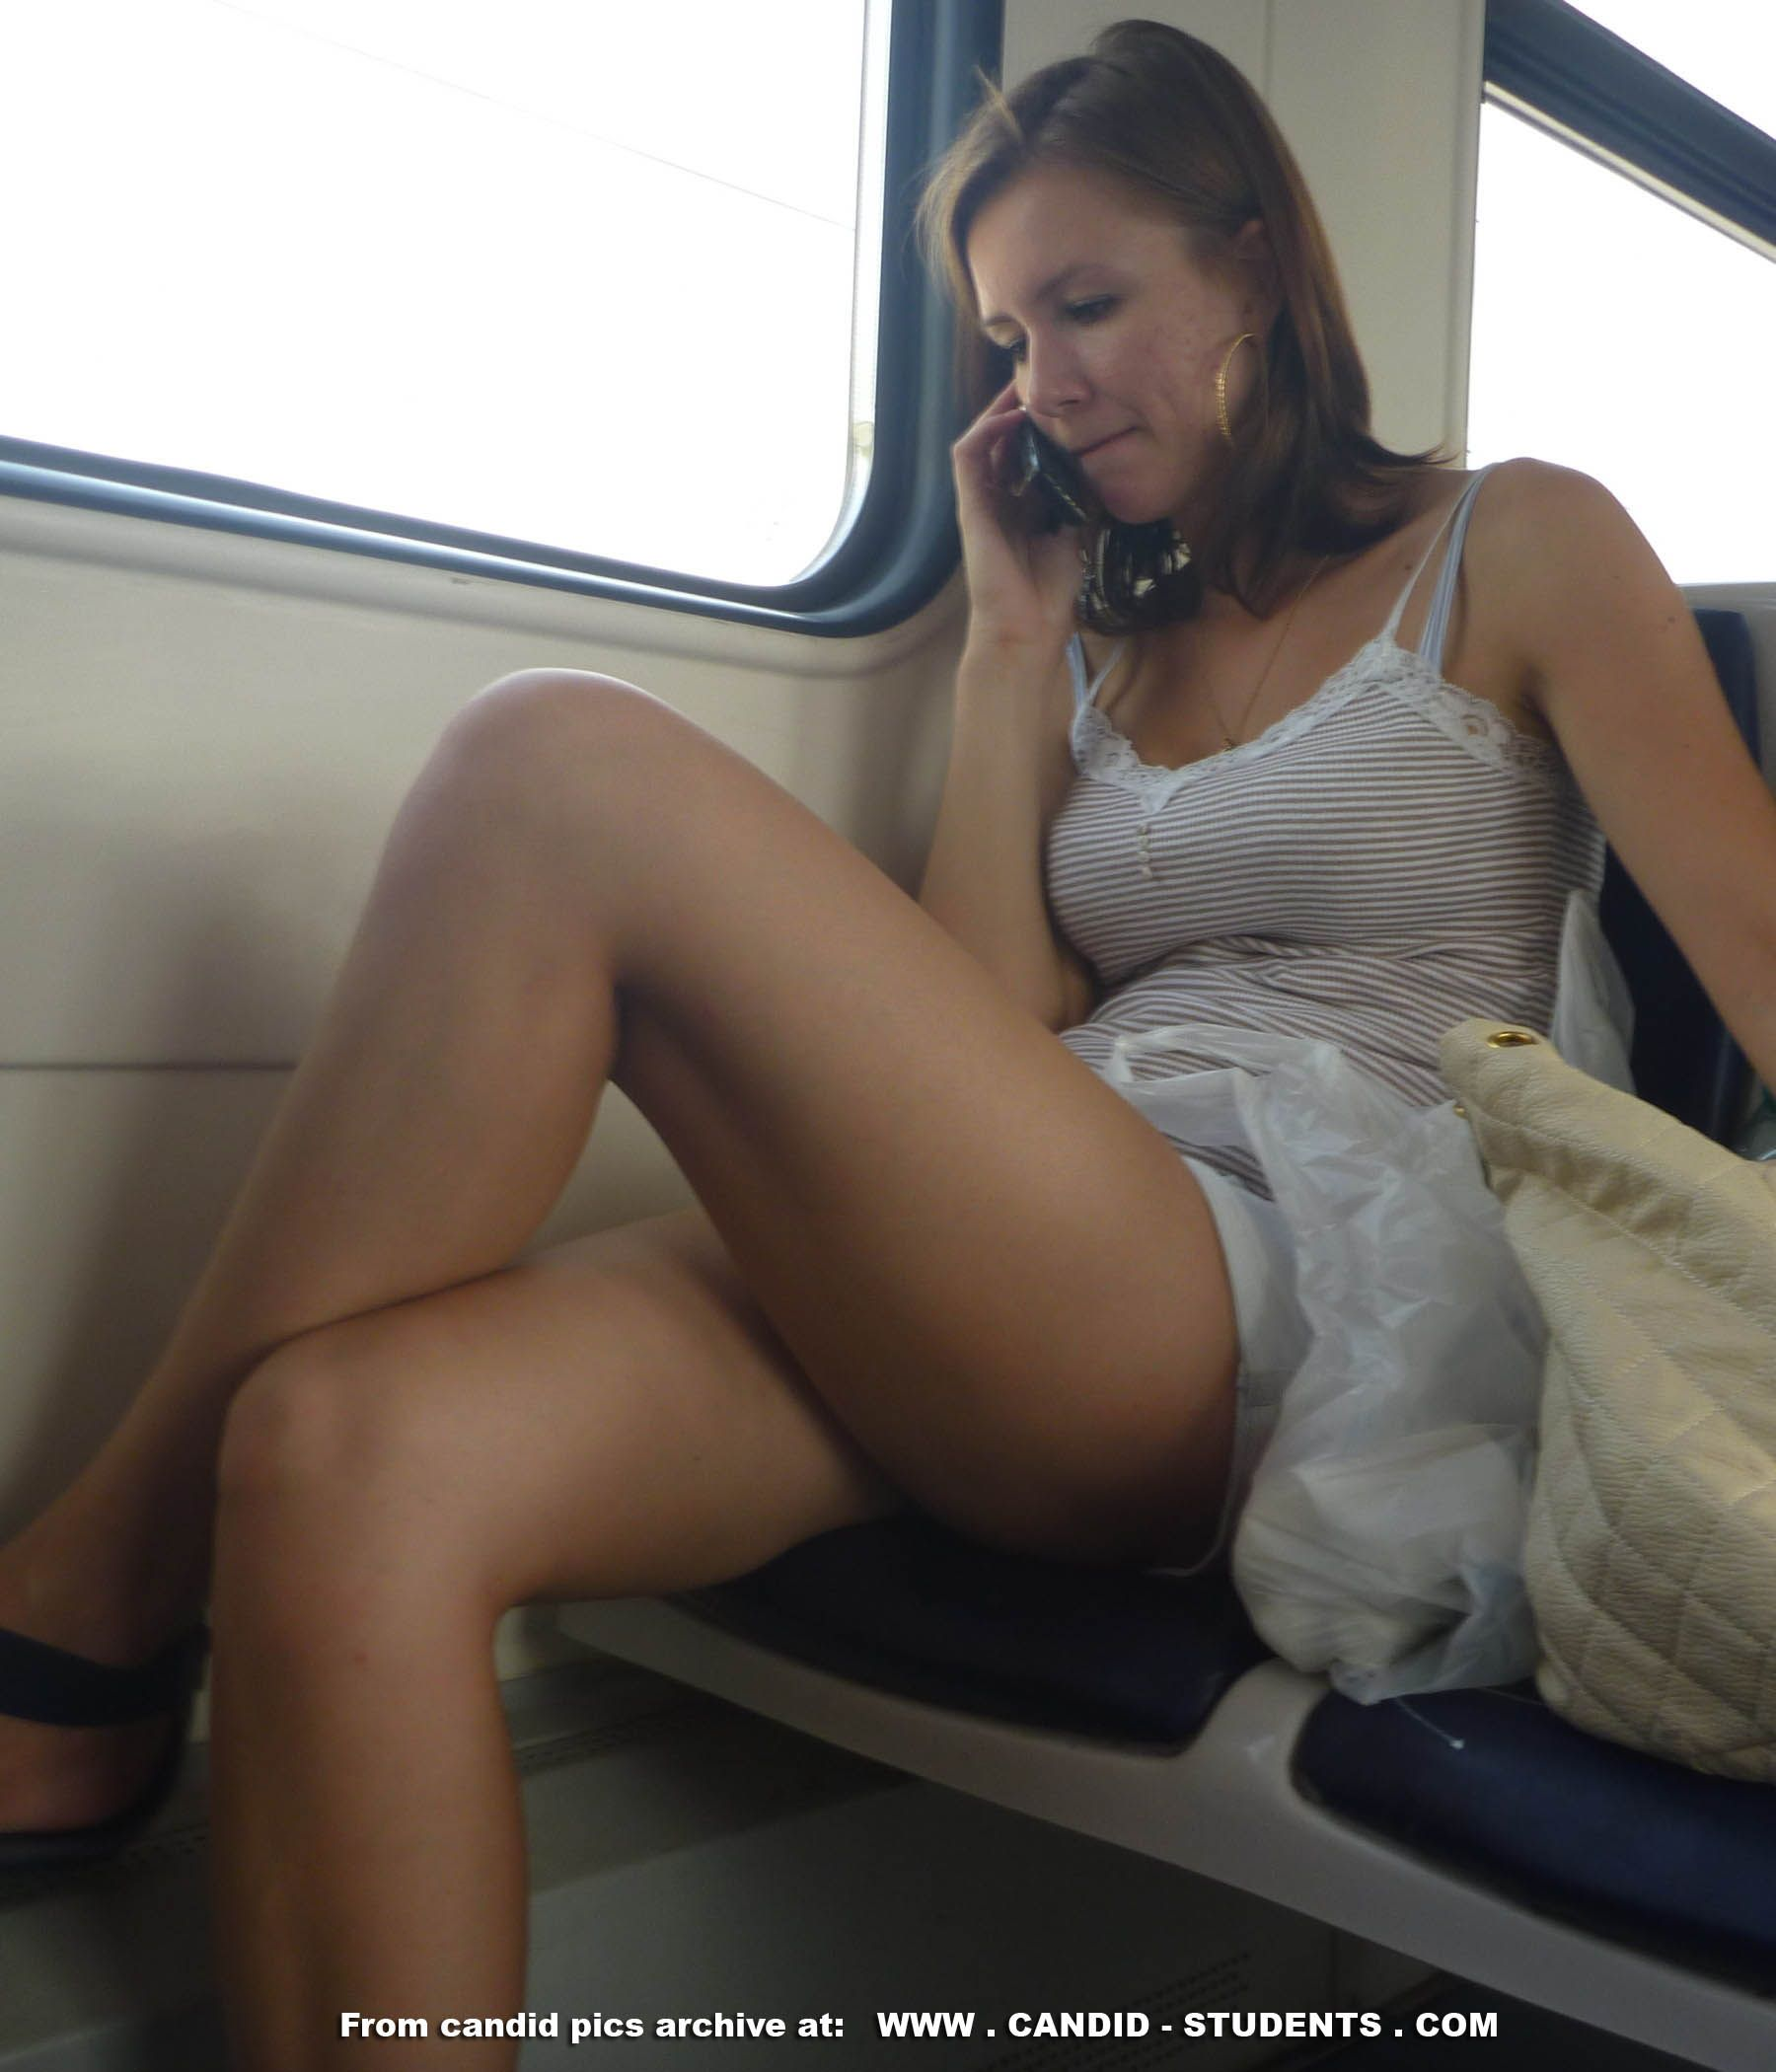 girl candid panty Upskirt Voyeur 1 2 3 | upskirt voyeur panty picture oops view exhibitionism